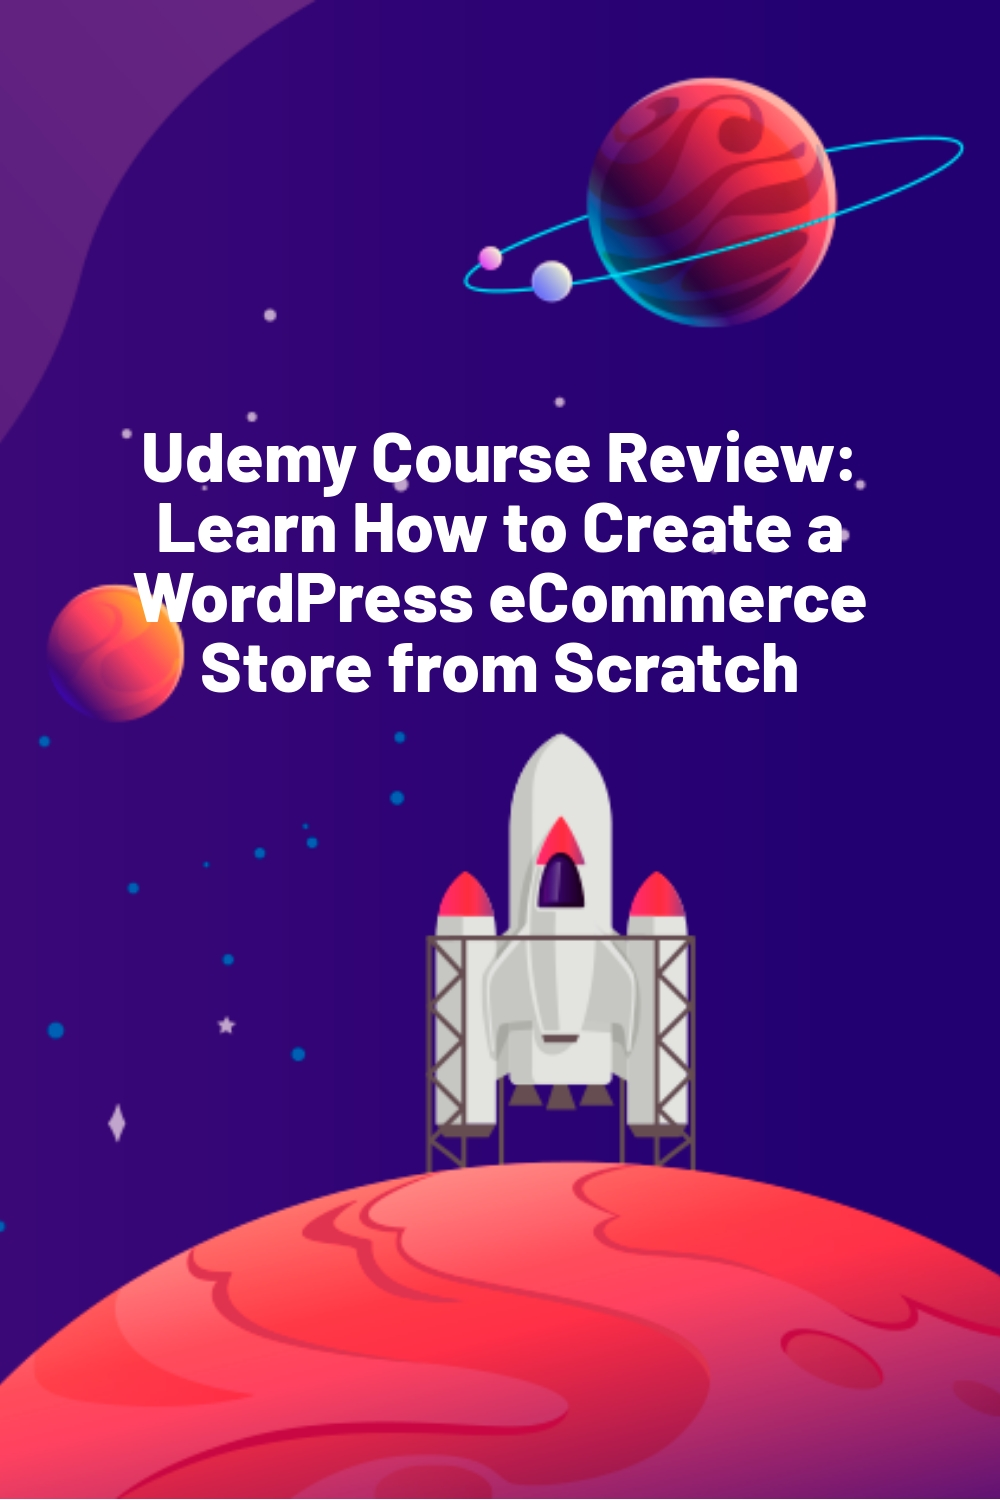 Udemy Course Review: Learn How to Create a WordPress eCommerce Store from Scratch